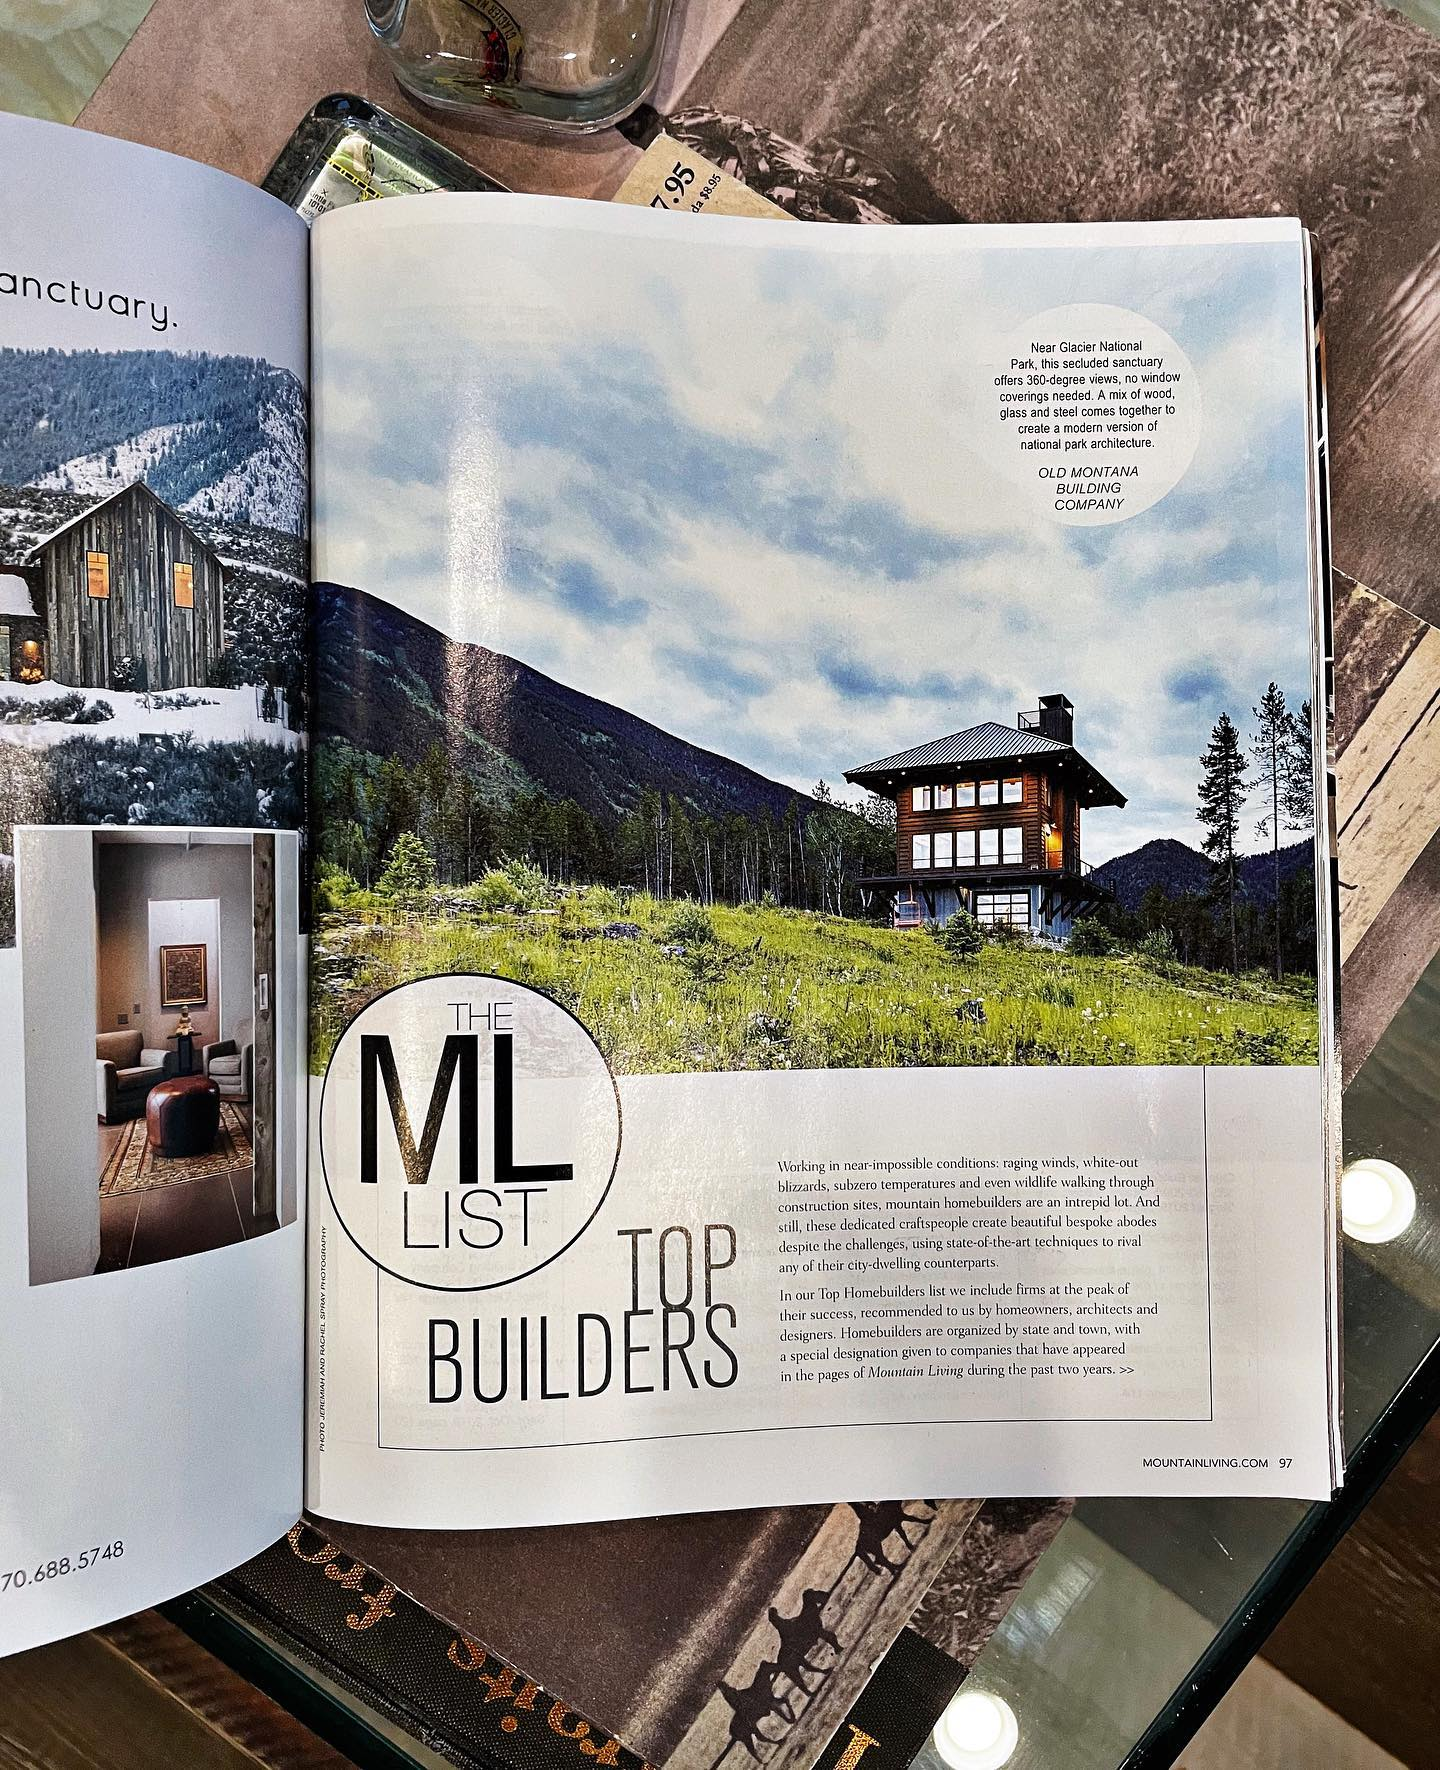 "Mountain Living's Top Mountain Homebuilder list for 2021...how surprising is it to open up this month's issue and find out we not only made the list...but the top spot... ""Working in near-impossible conditions: raging winds, white-out blizzards, subzero temperatures and even wildlife walking through construction sites, mountain home builders are an intrepid lot. And still, these dedicated craftspeople create beautiful bespoke abodes despite the challenges, using state-of-the-art techniques to rival any of their city-dwelling counterparts."" @jeremiahandrachel @theredbarn_mt @somertreat whitefish custom home builder"